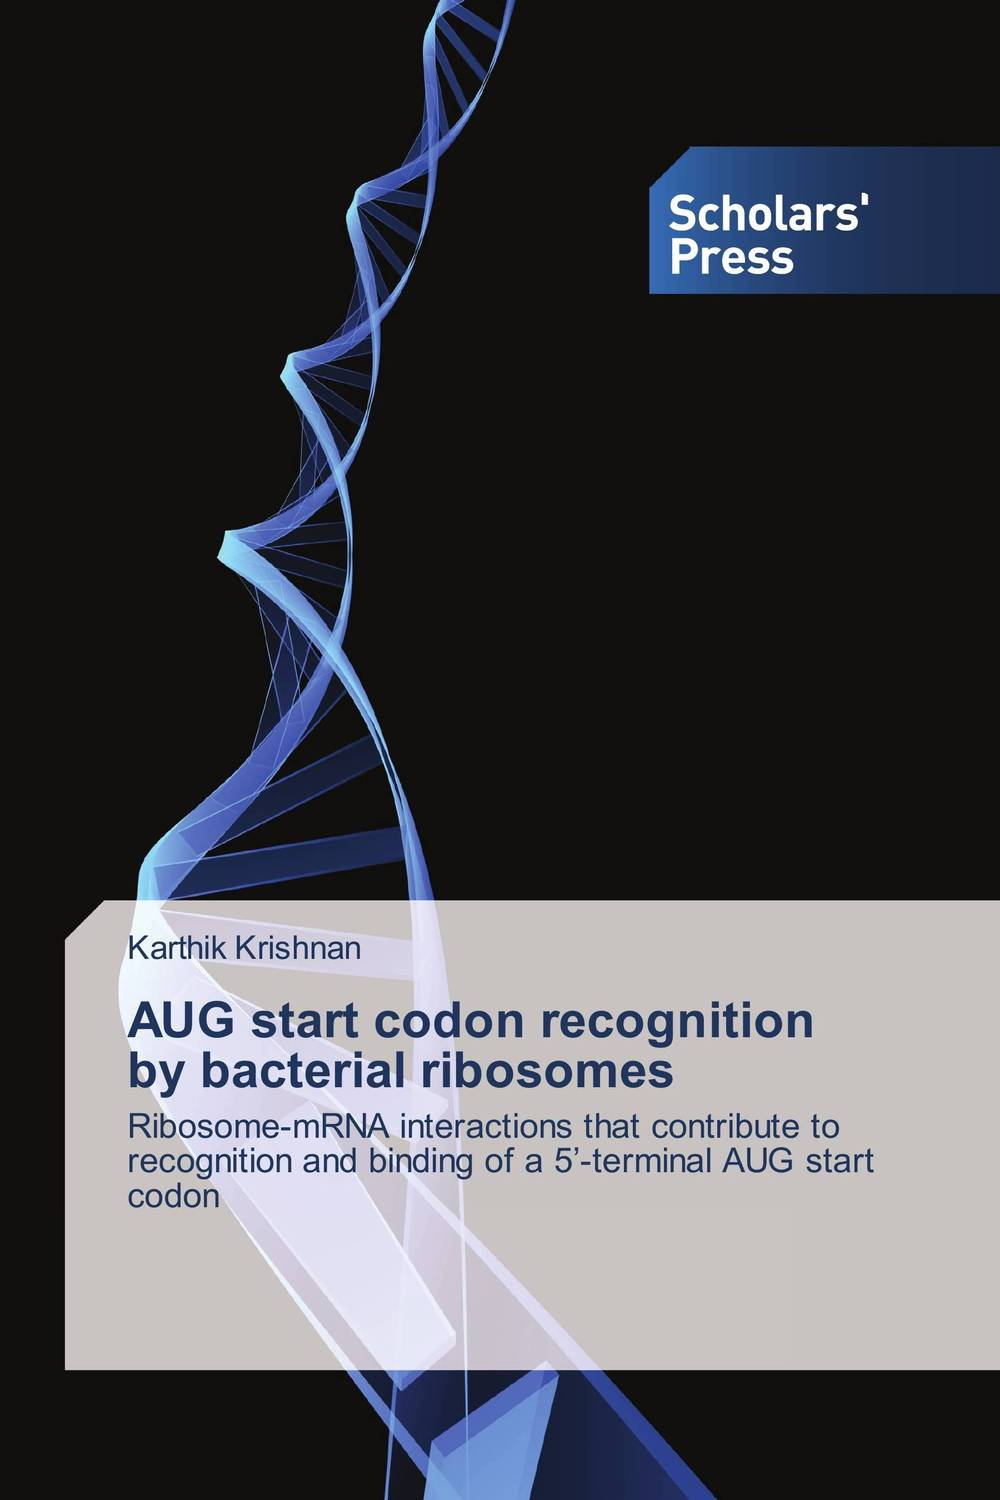 AUG start codon recognition by bacterial ribosomes improved expression of bacterial chia in plant by codon optimisation